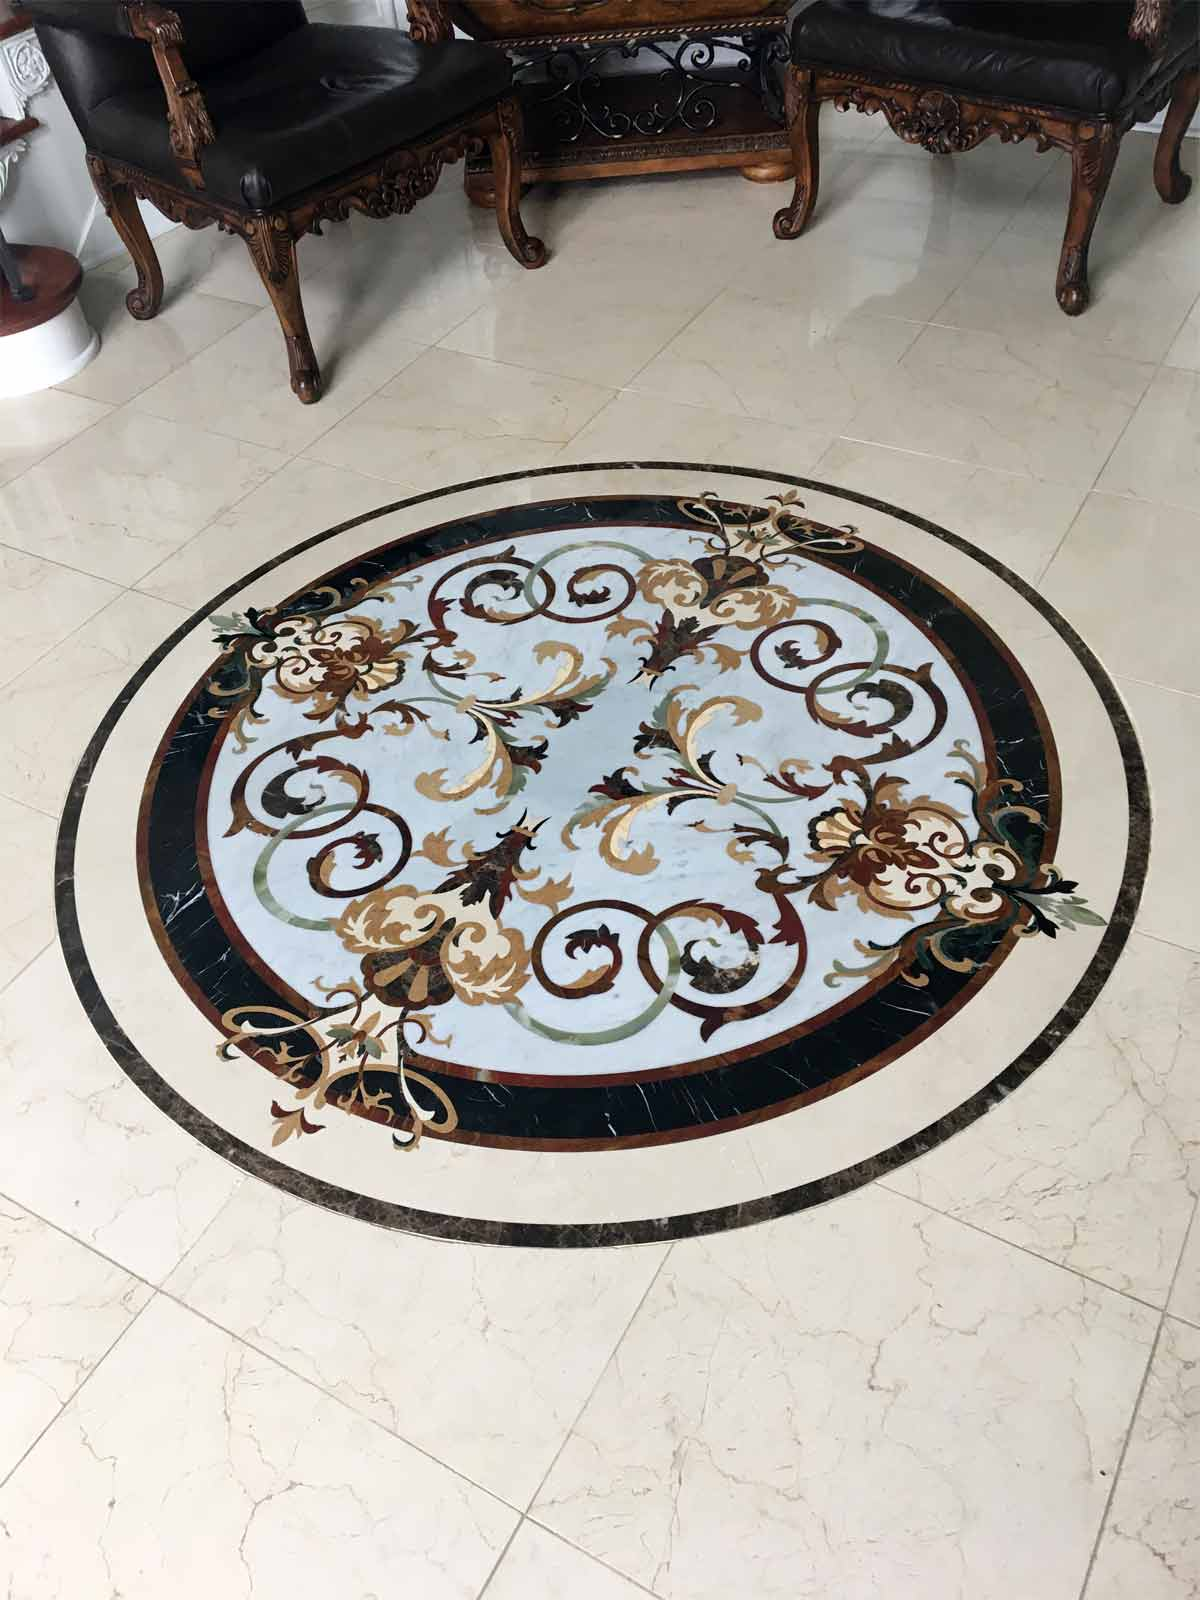 566: Rafael marble floor medallion installed.